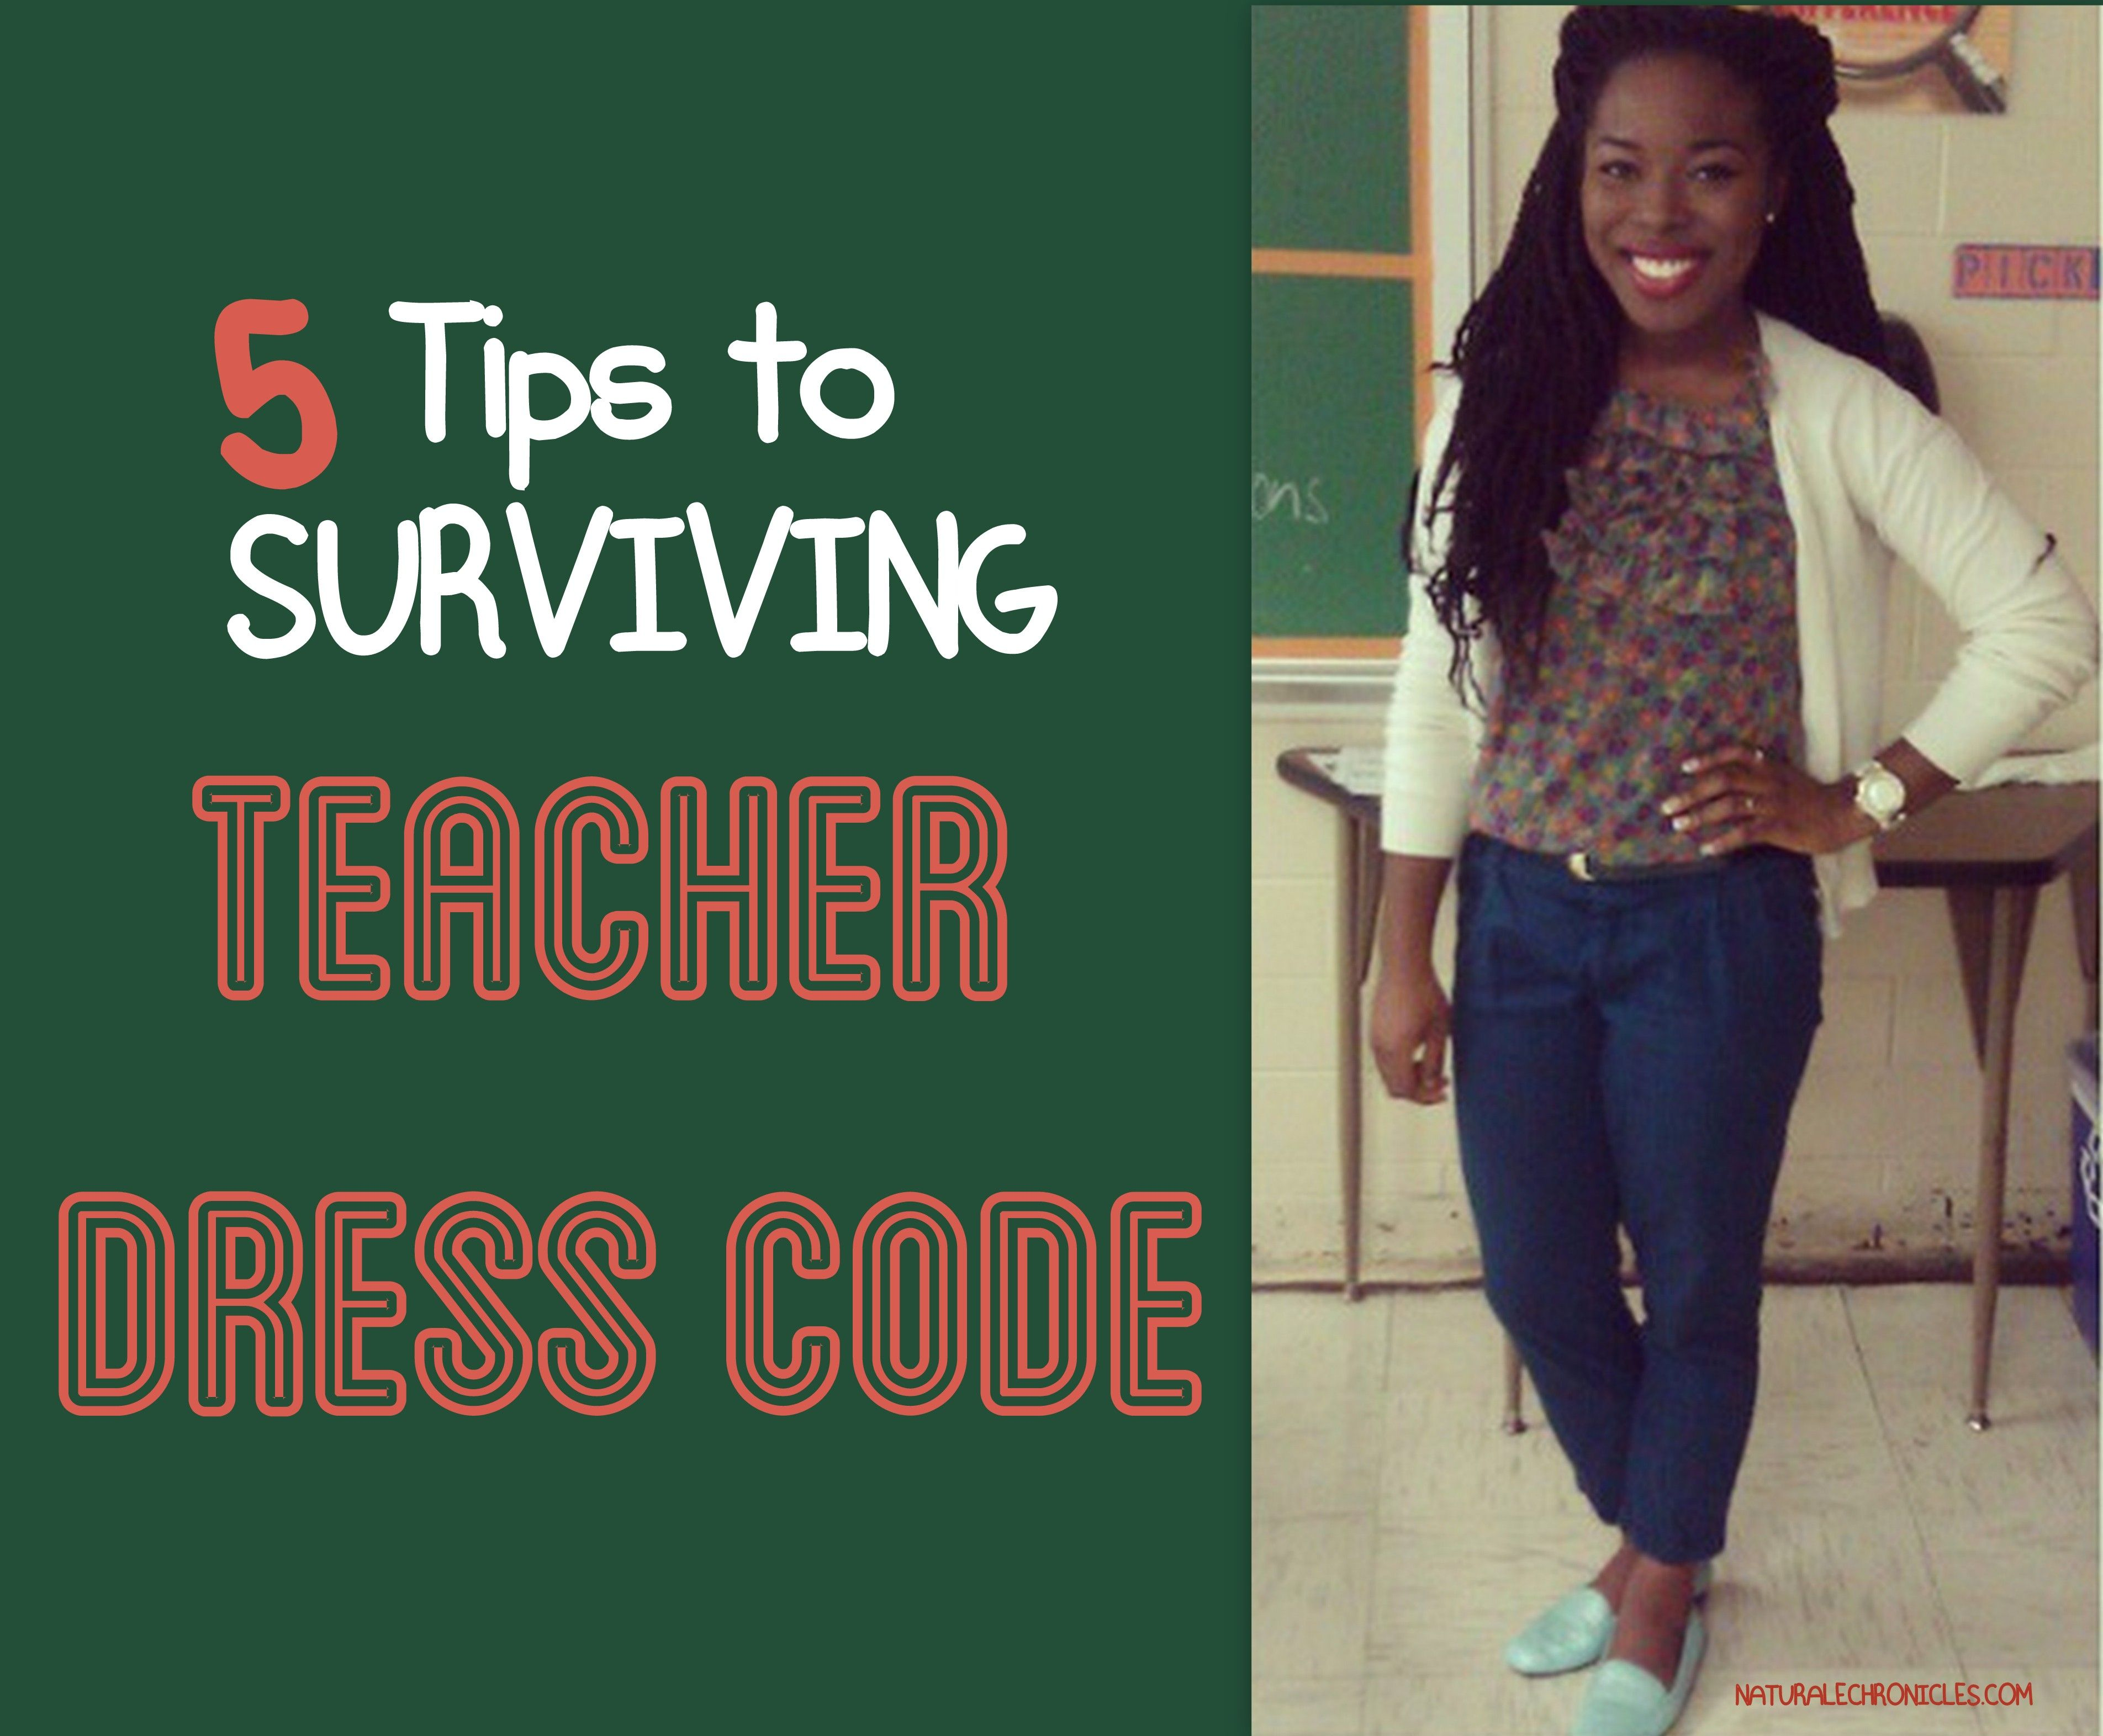 DRESSCODE - A guide to dressing like yourself while still being ...